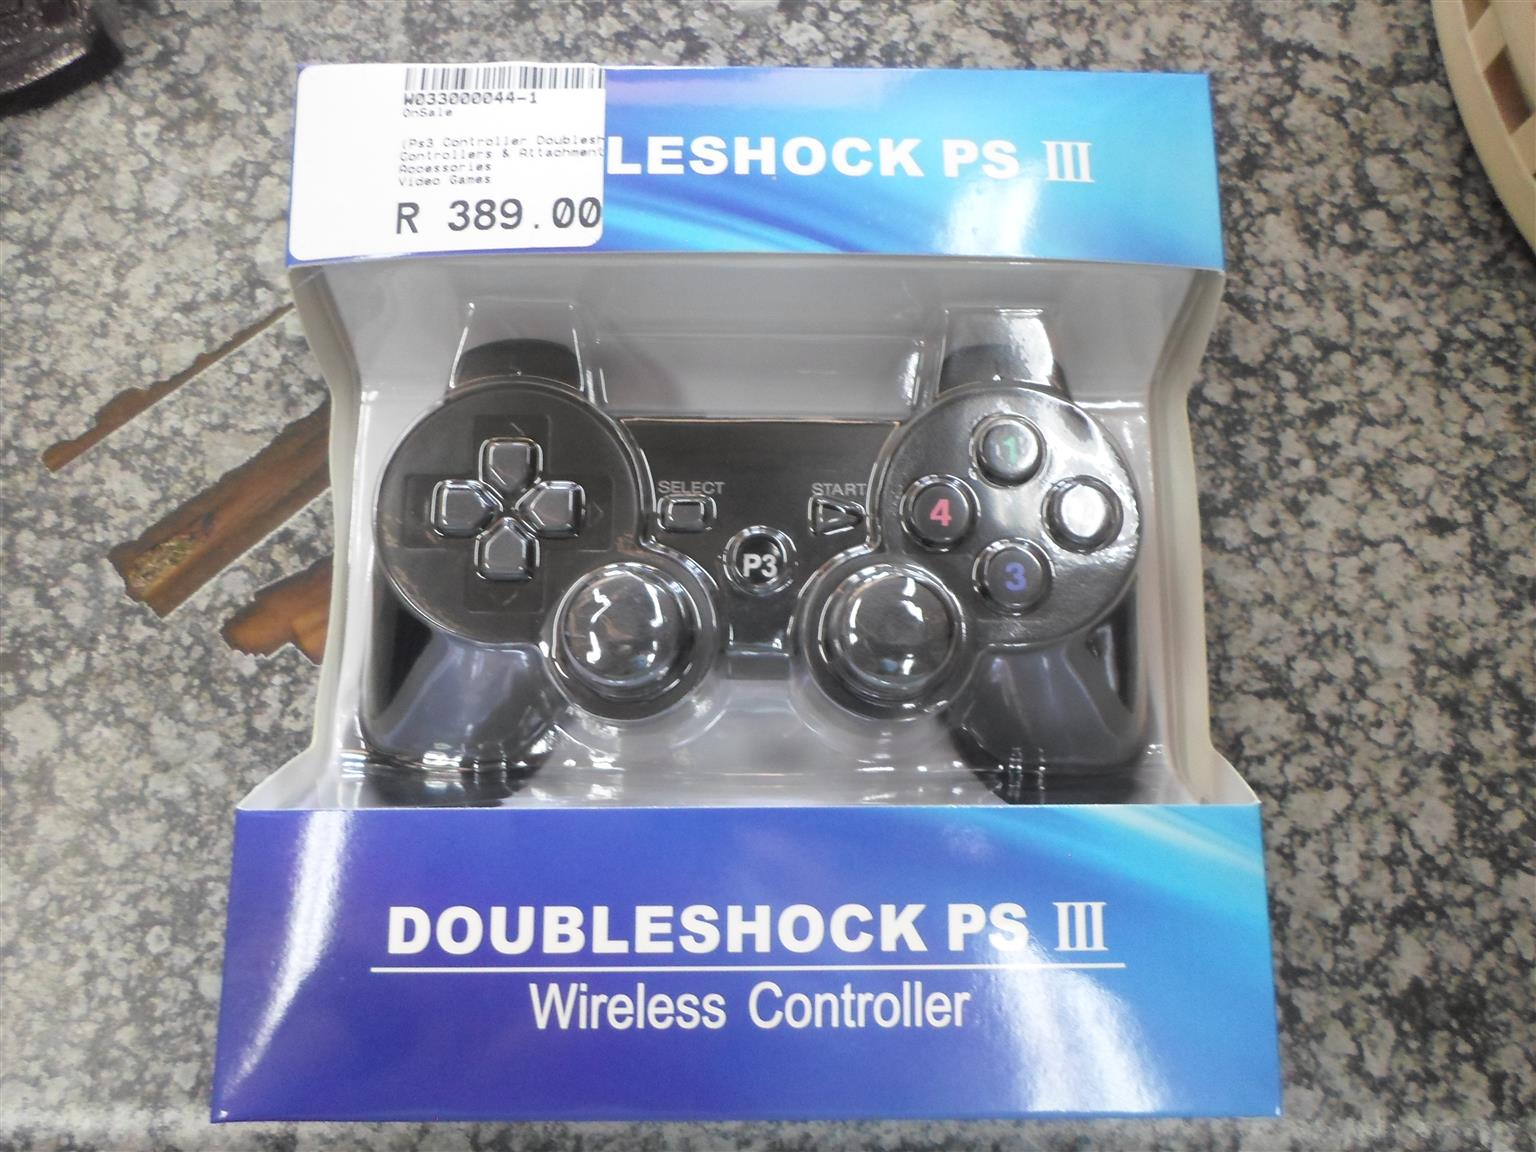 Doubleshock PSlll Wireless Controller